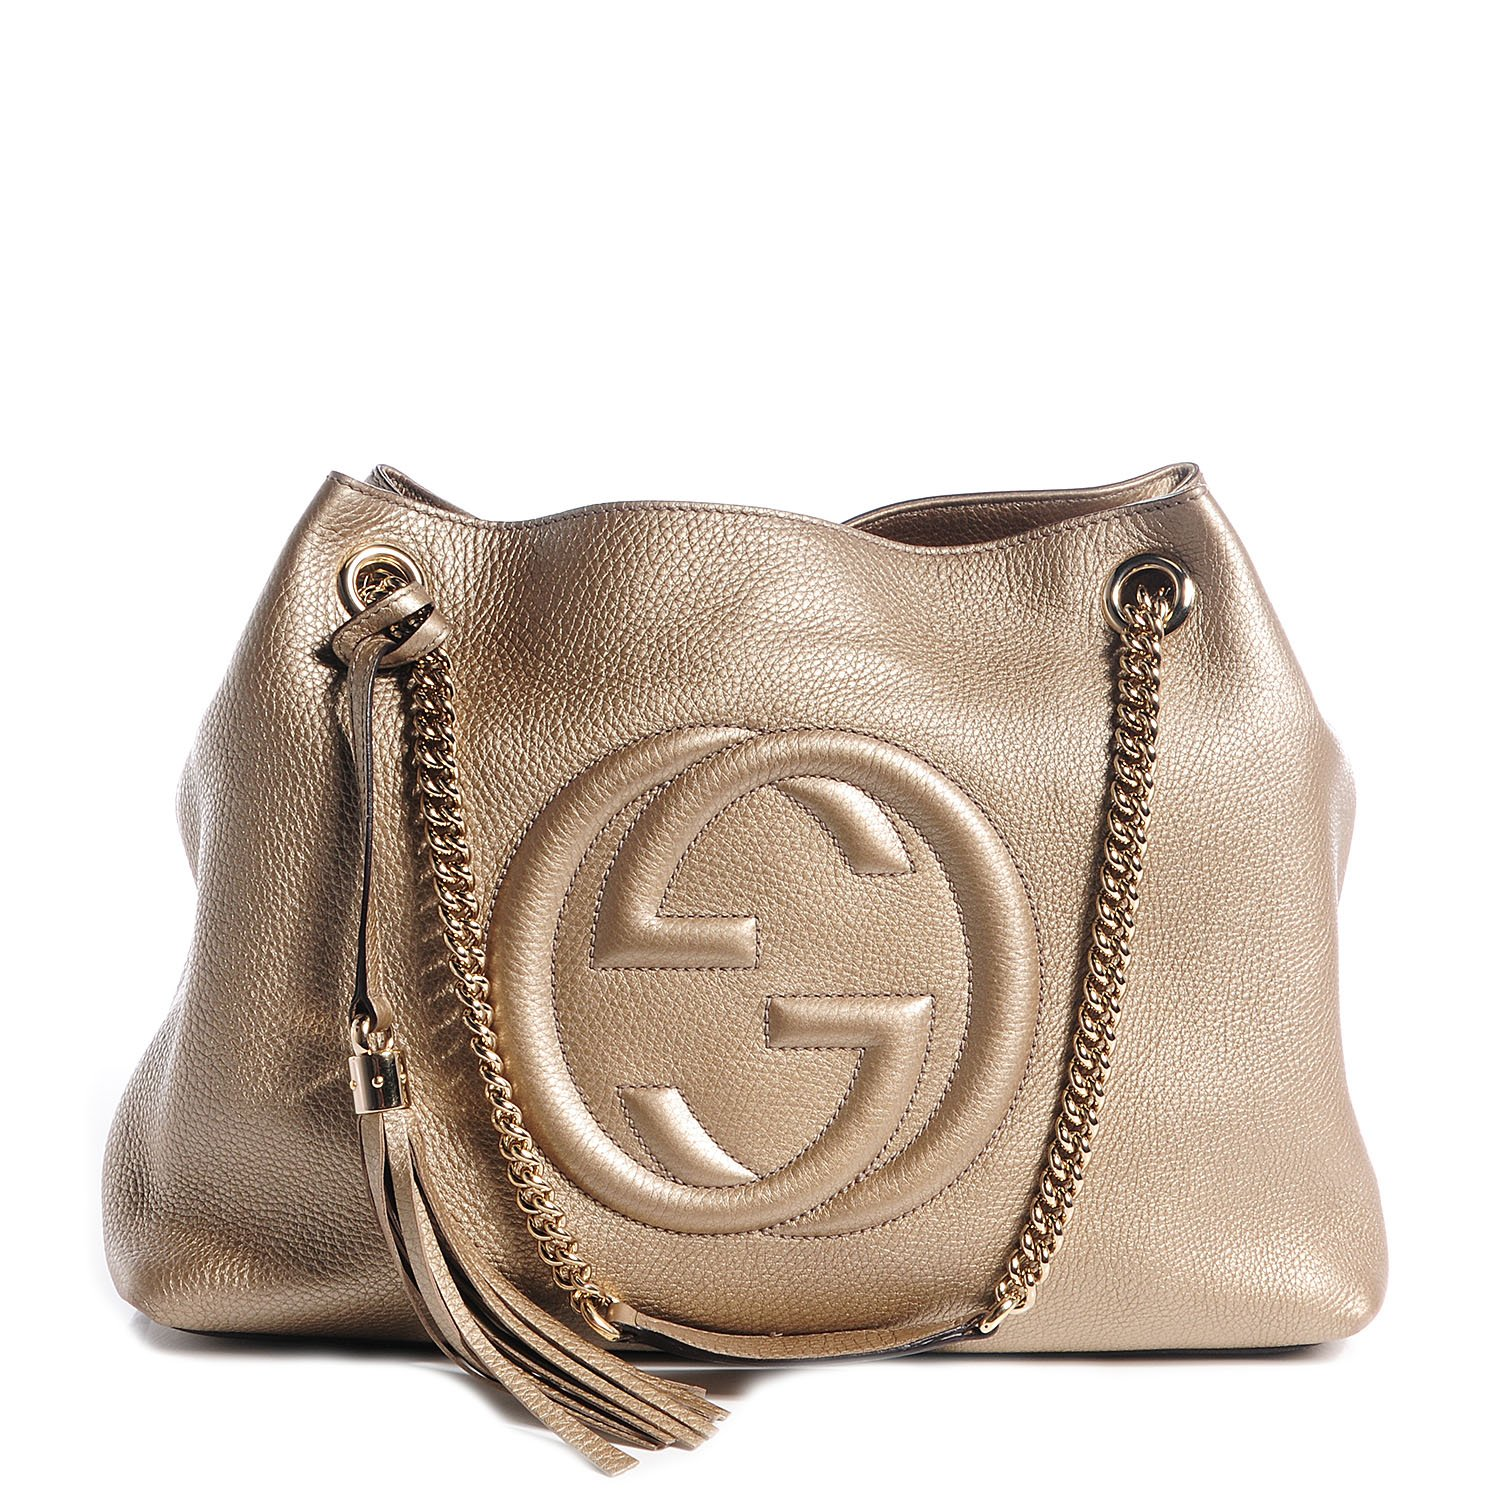 Gucci Soho Metallic Chain Medium Tote Golden Beige Leather New Bag by Gucci (Image #1)